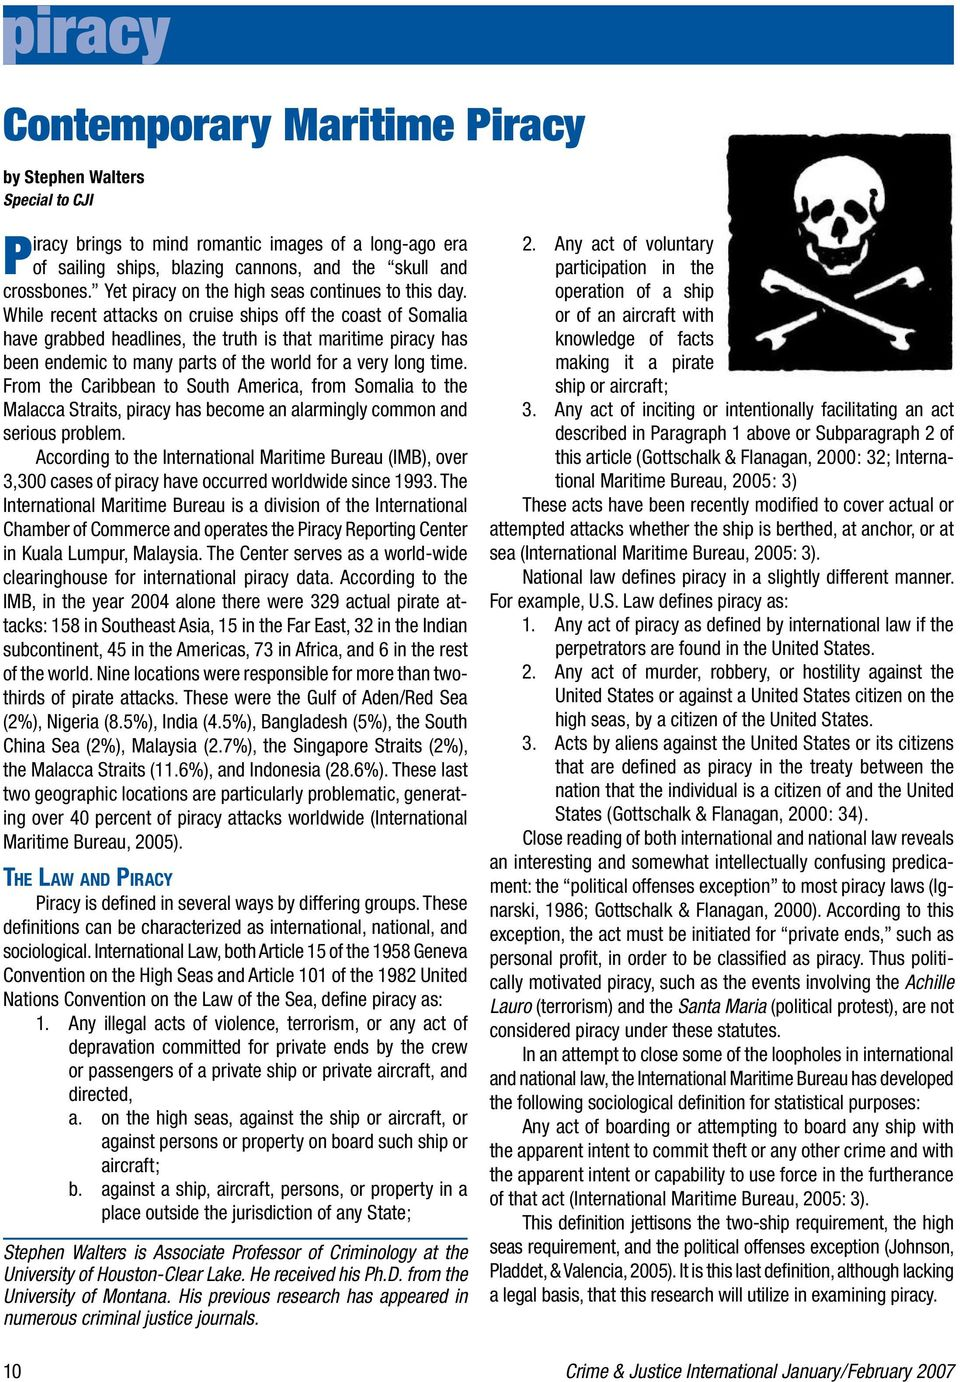 While recent attacks on cruise ships off the coast of Somalia have grabbed headlines, the truth is that maritime piracy has been endemic to many parts of the world for a very long time.